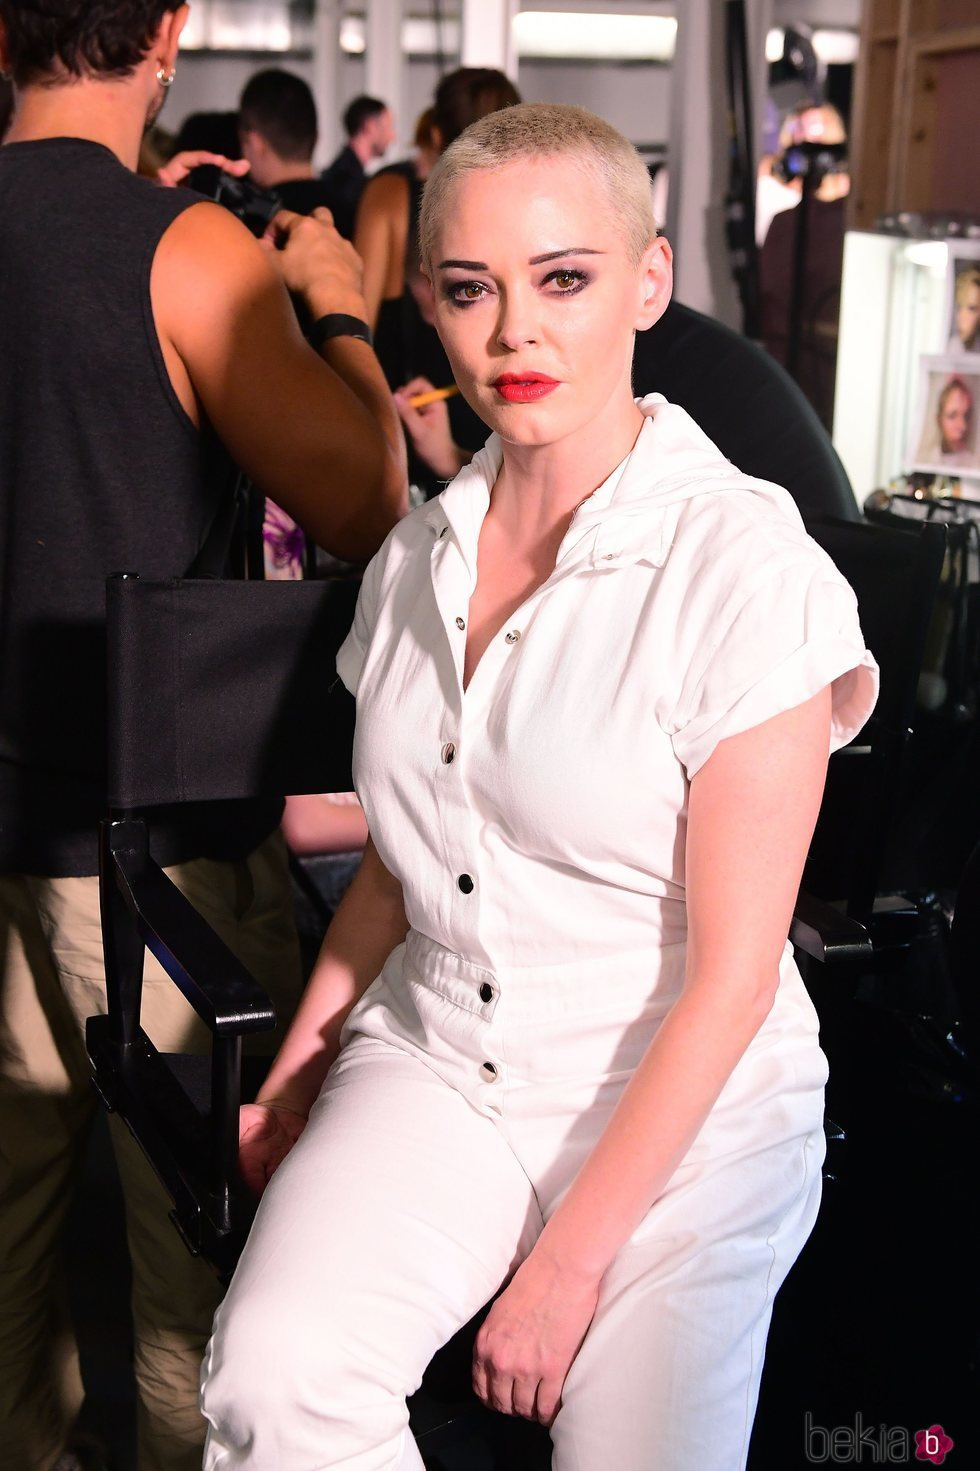 Rose McGowan en el backstage de Nichola Kirkwood durante la London Fashion Week